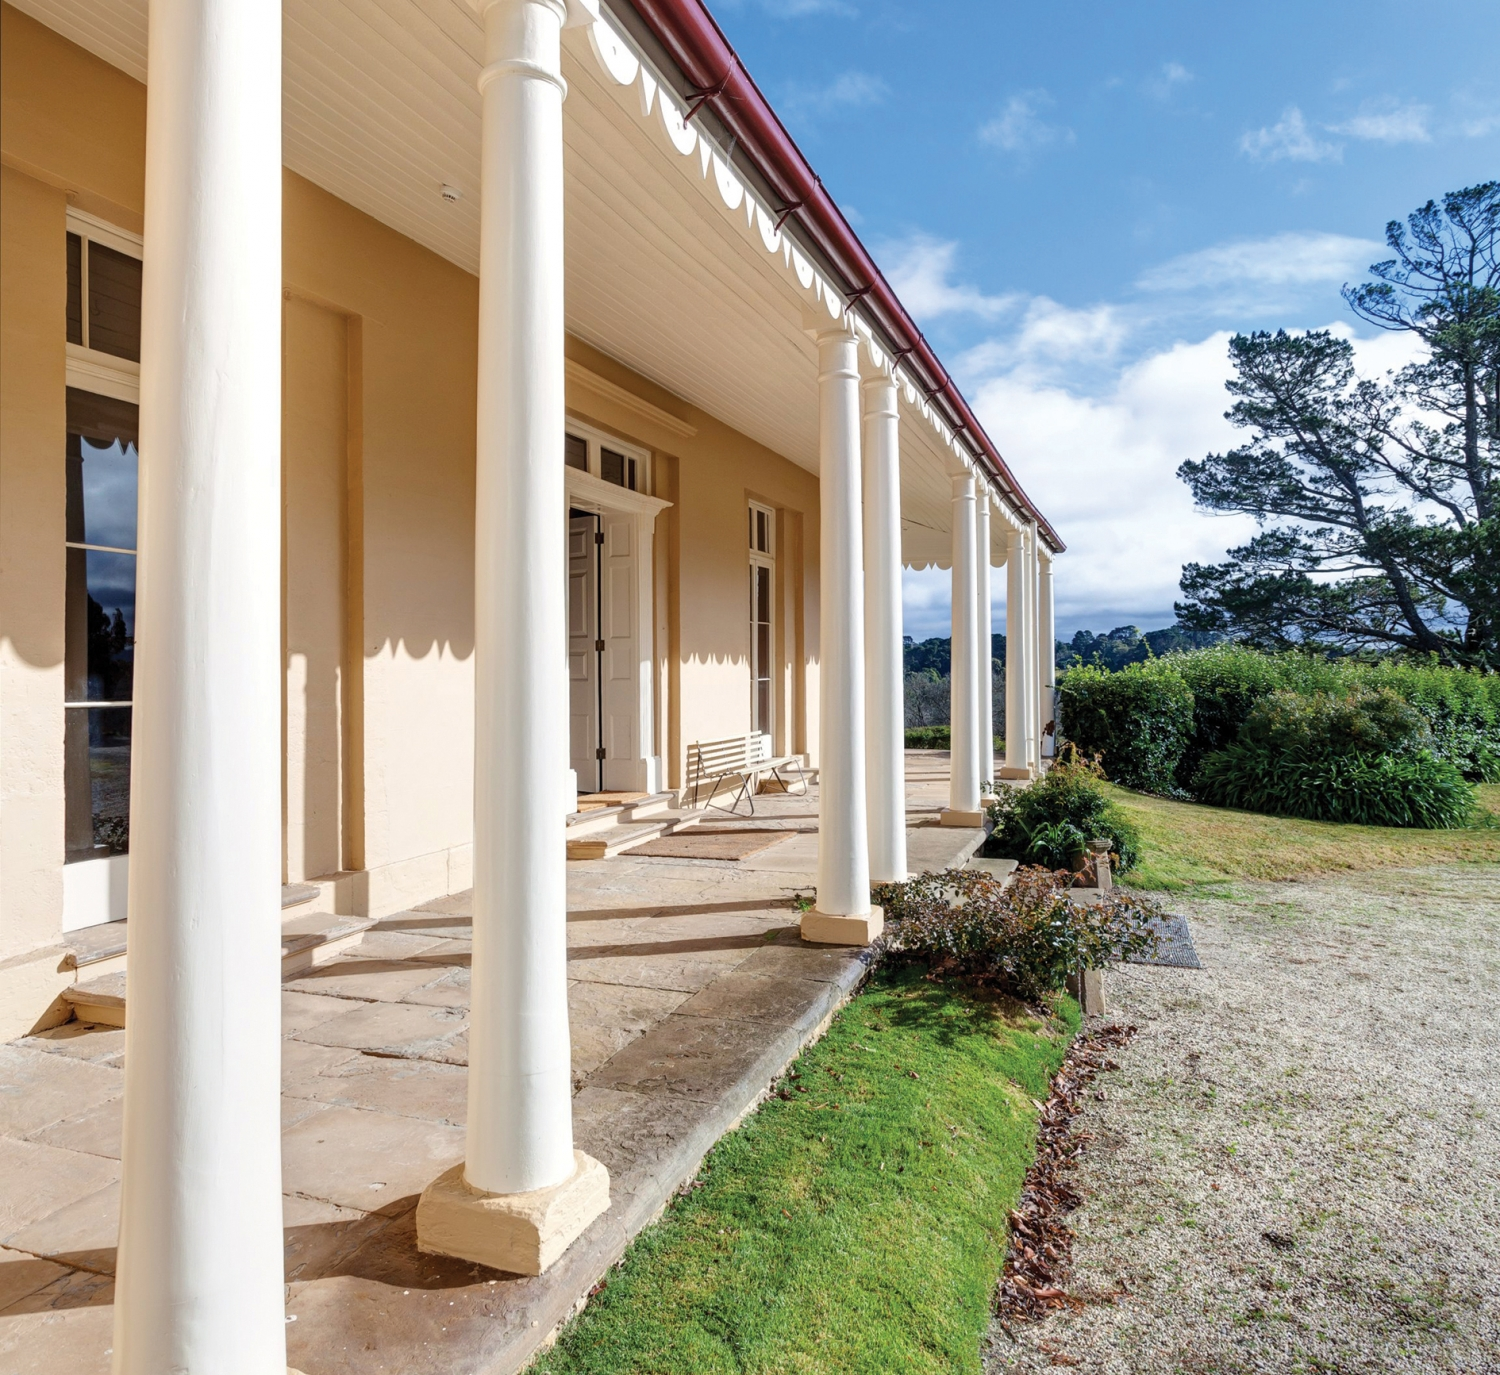 View of front verandah and door with white columns, flagstones and garden beyond.